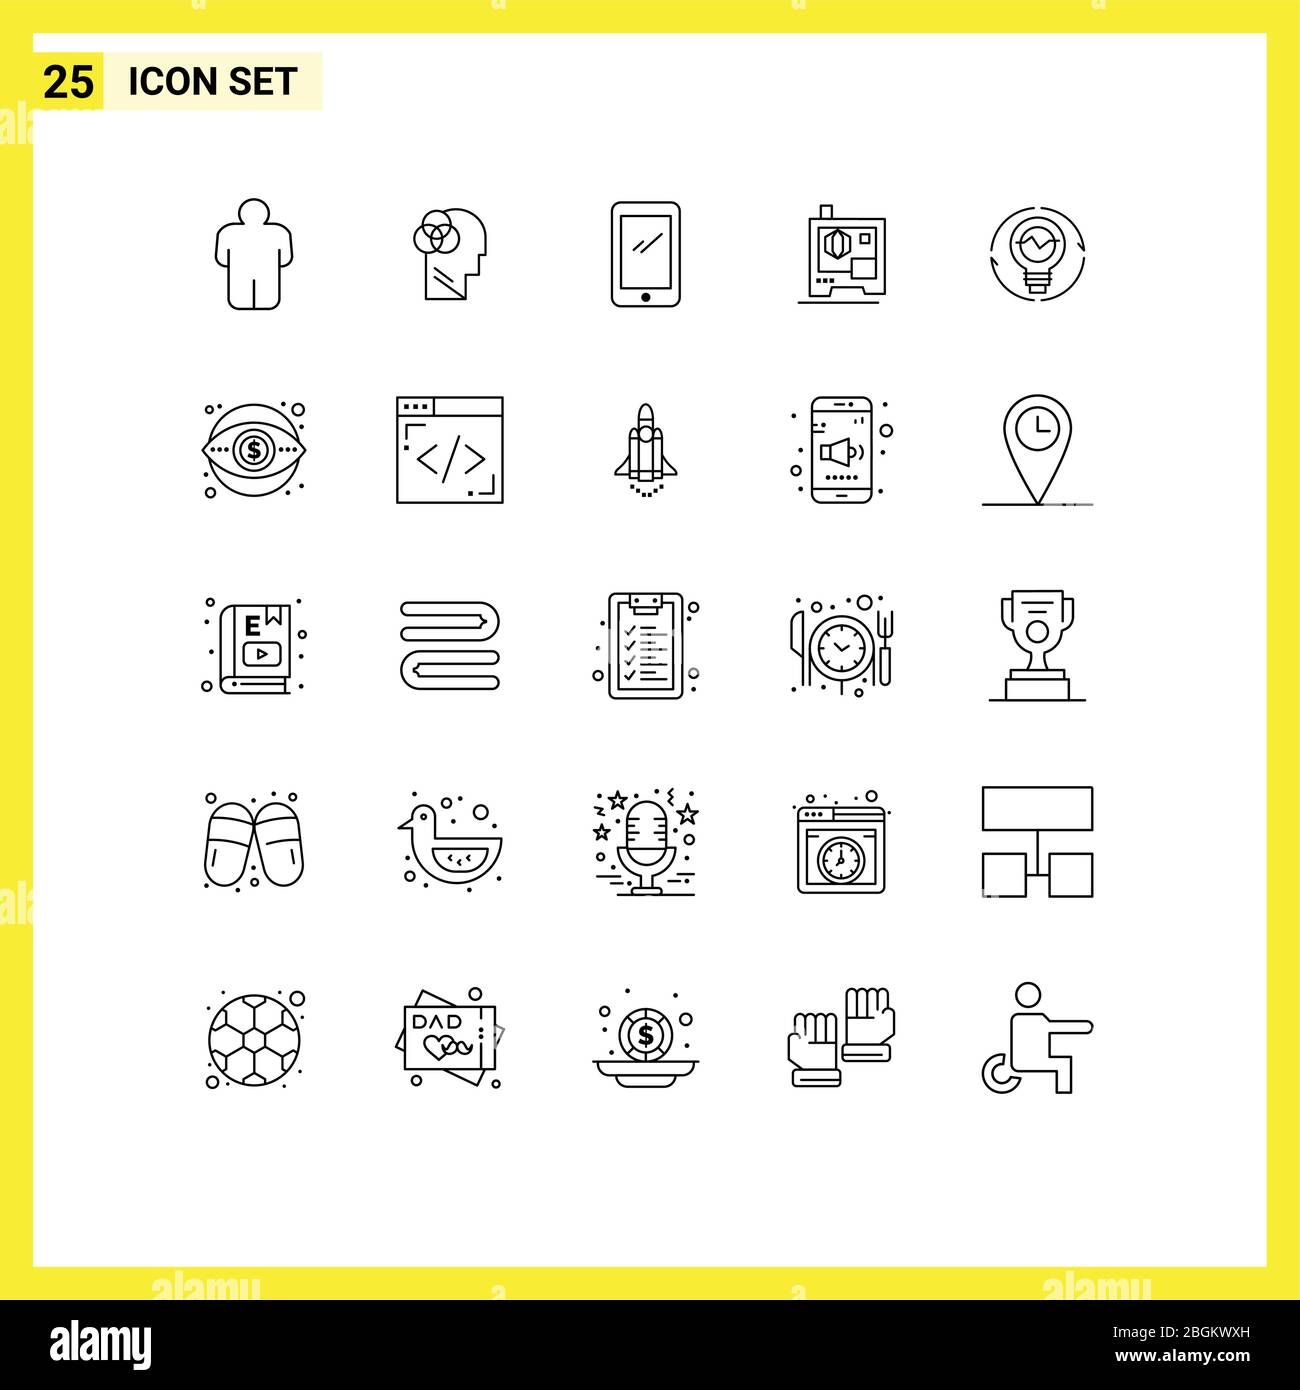 25 Thematic Vector Lines and Editable Symbols of generation, bulb, smart phone, scanner, printer Editable Vector Design Elements Stock Vector